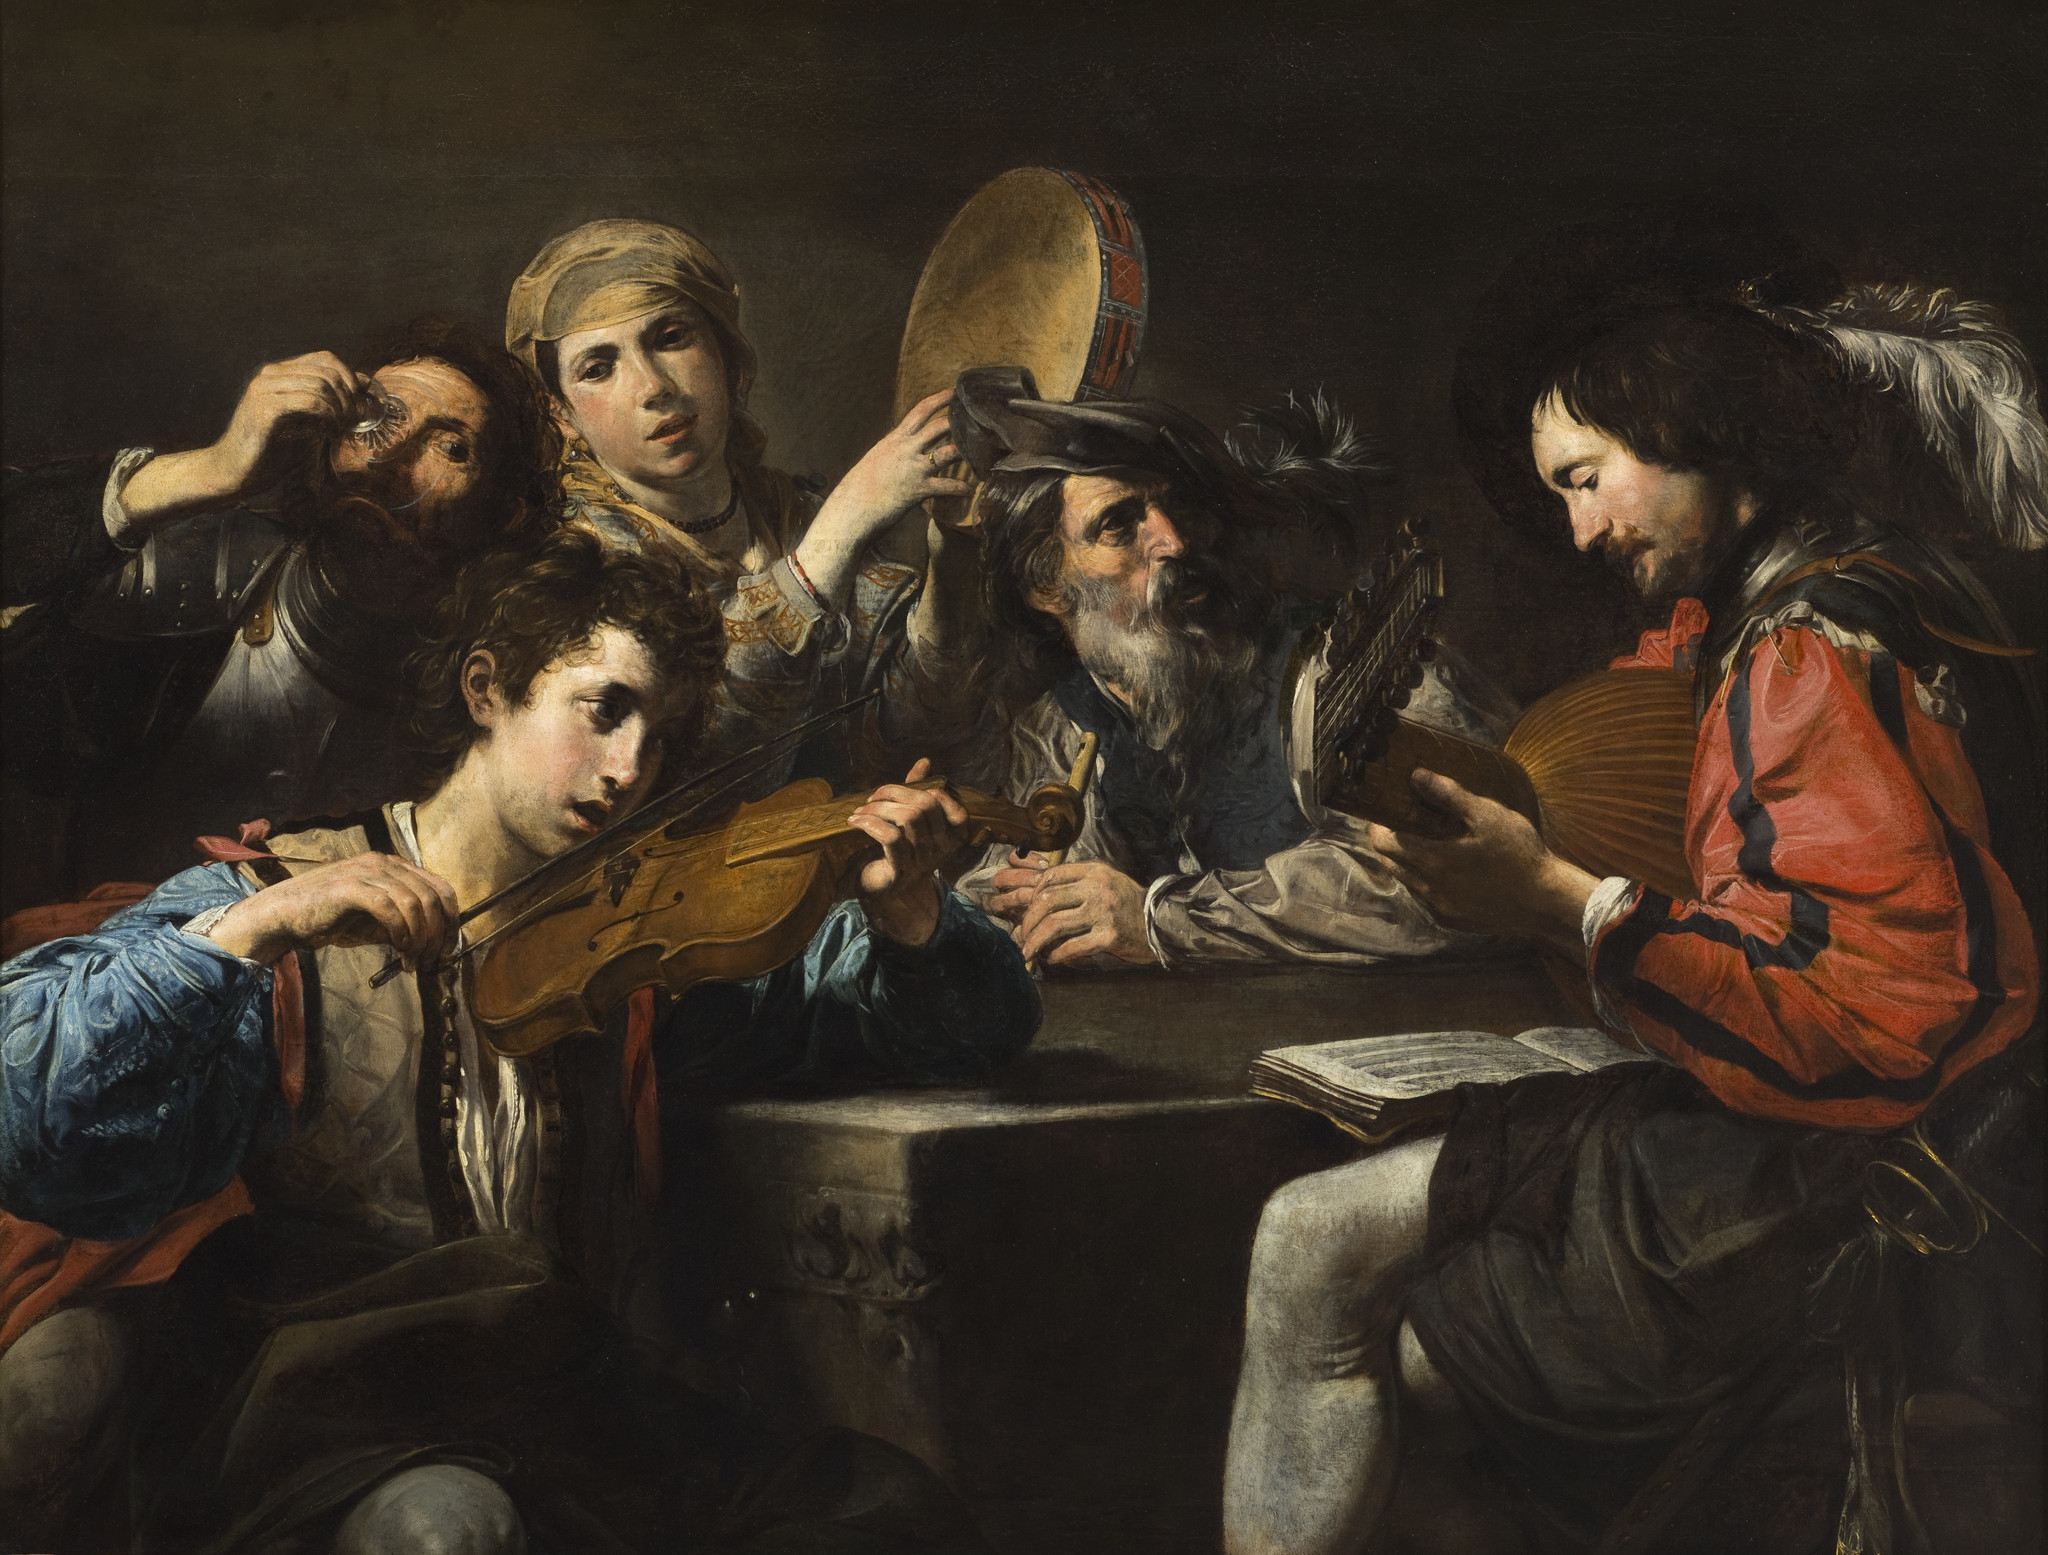 """"""" Musical Party"""" by Valentin de Boulogne, acquired by J. Patrice Marandel for LACMA with funds from the Ahmanson Foundation."""